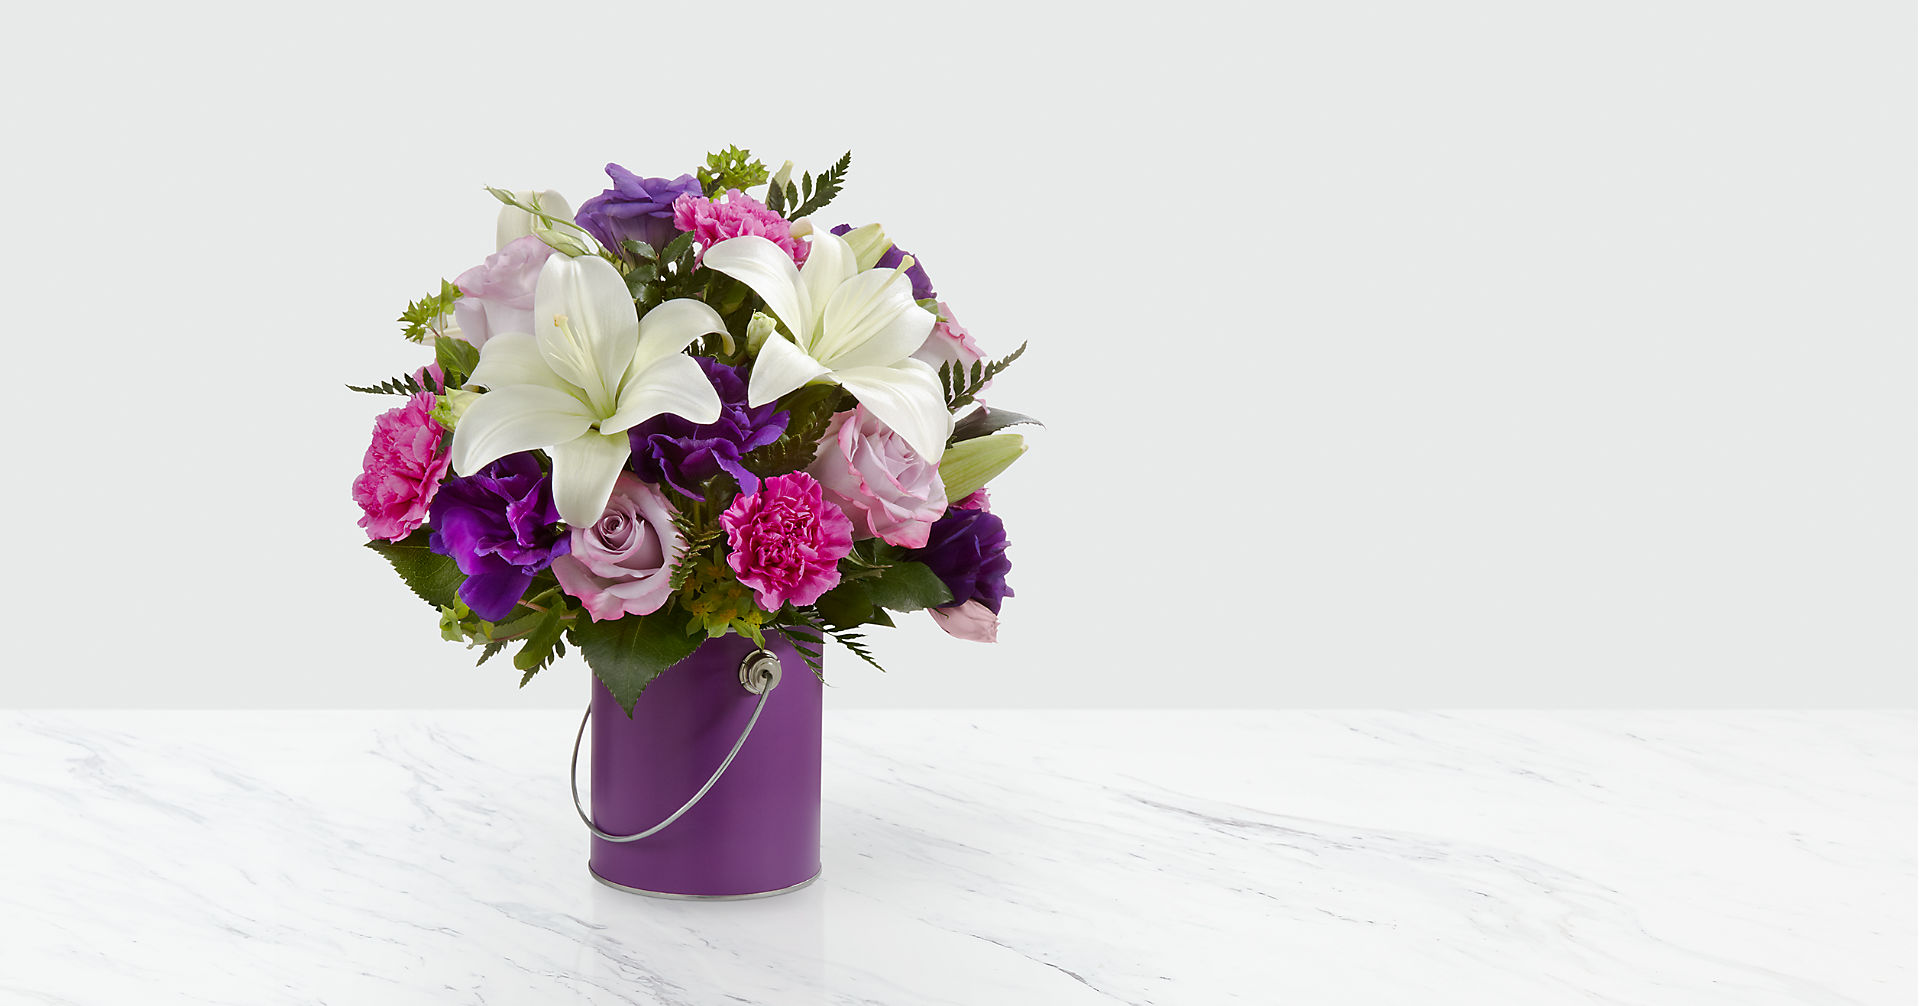 The Color Your Day With Beauty™ Bouquet - Image 1 Of 2